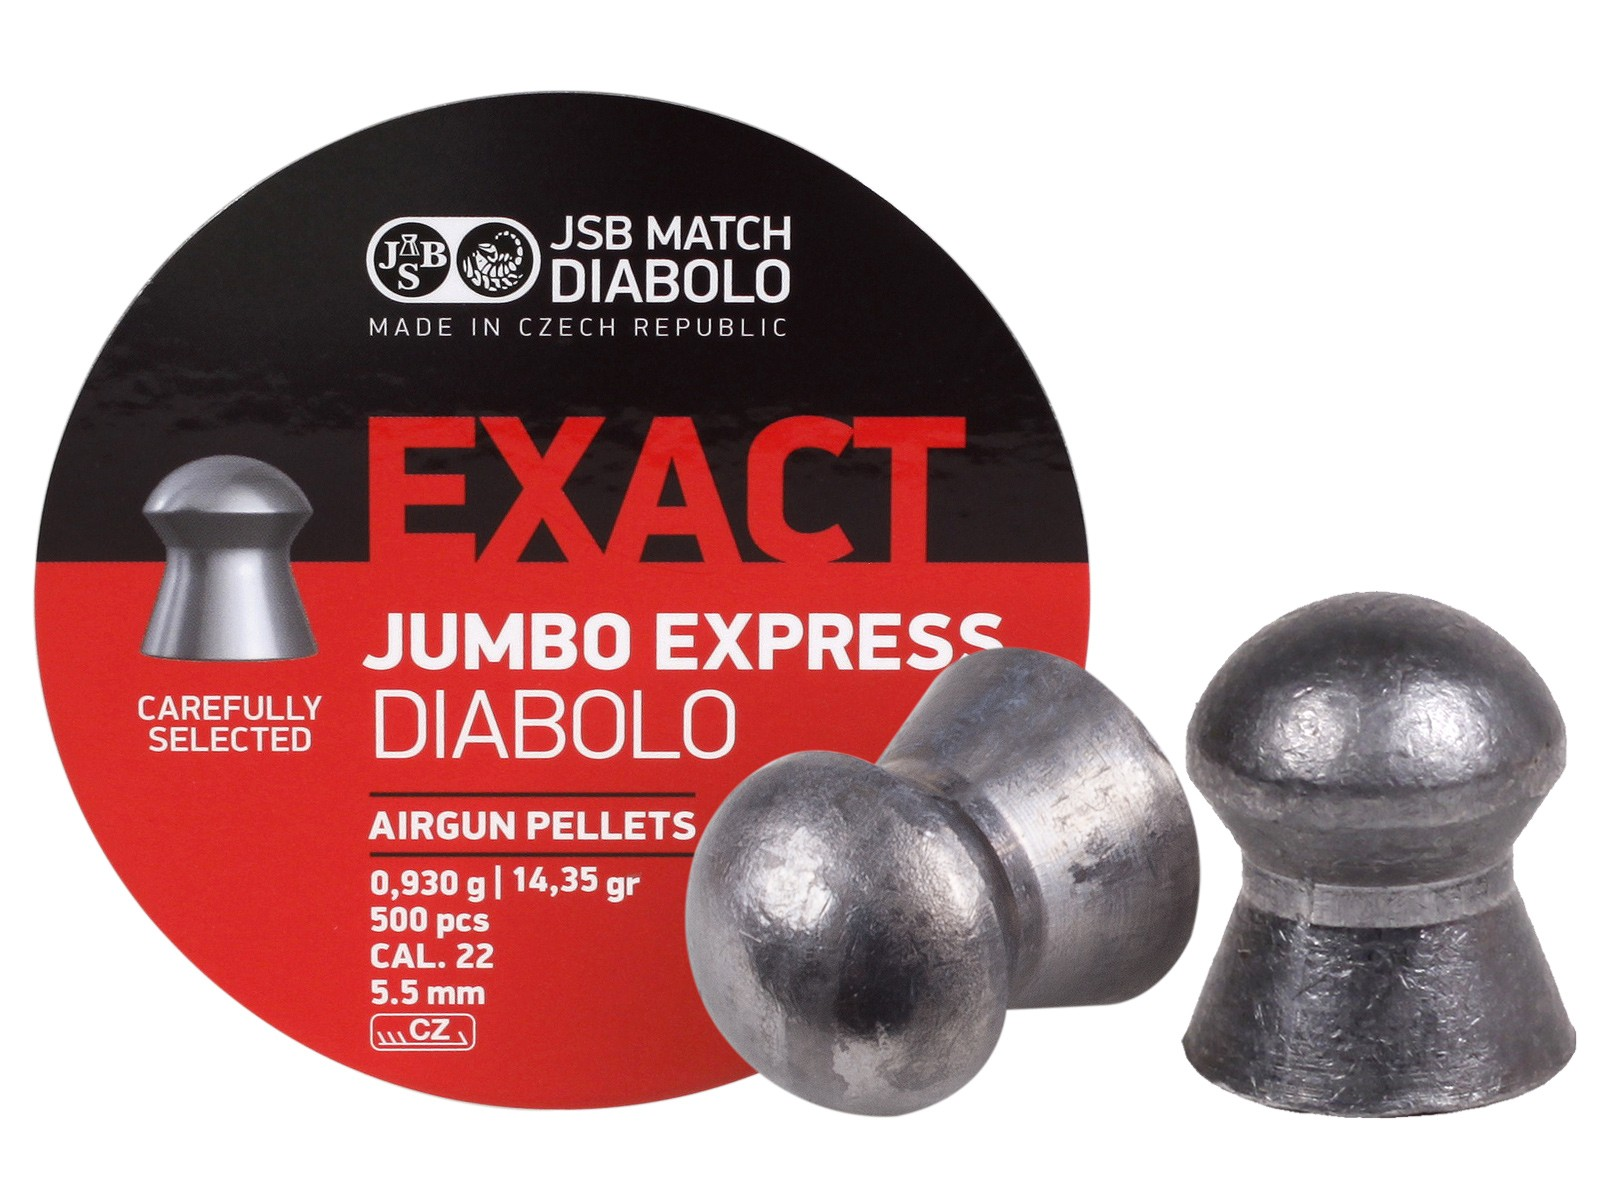 JSB Diabolo Exact Jumbo Express .22 Cal, 14.3 Grains, Domed, 500ct